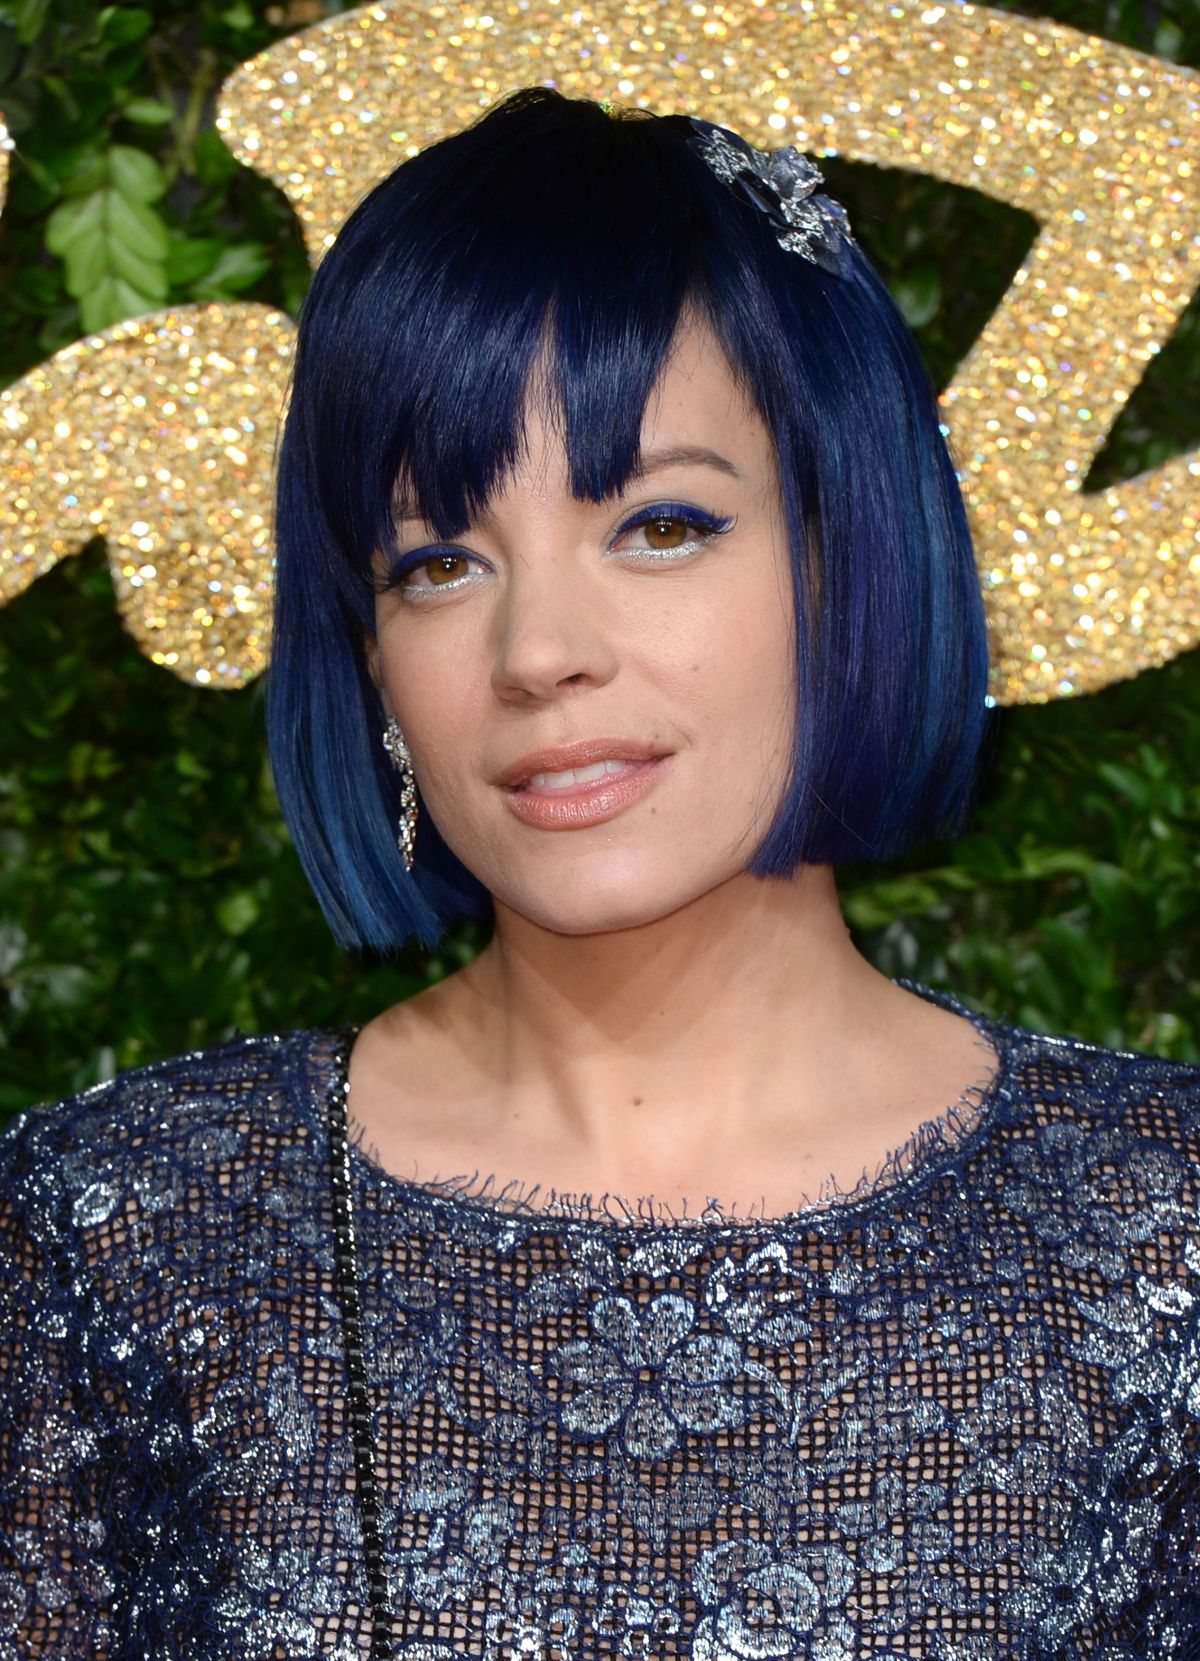 LILY ALLEN at 2015 British Fashion Awards in London 11/23/2015 ... Lily Allen